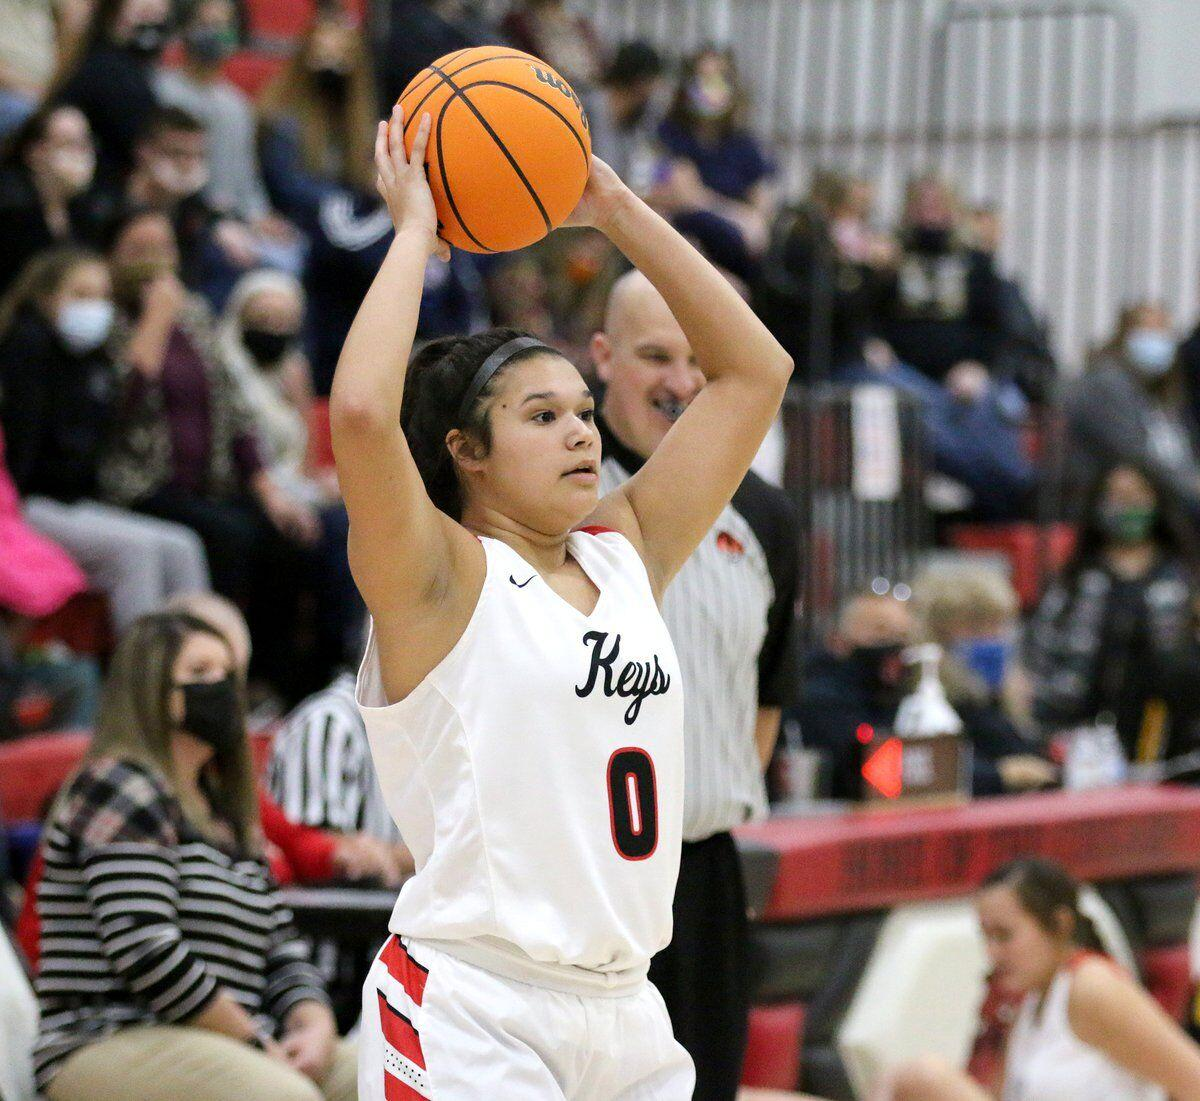 Lady Cougars roll past Hulbert behind Eubanks and Berry